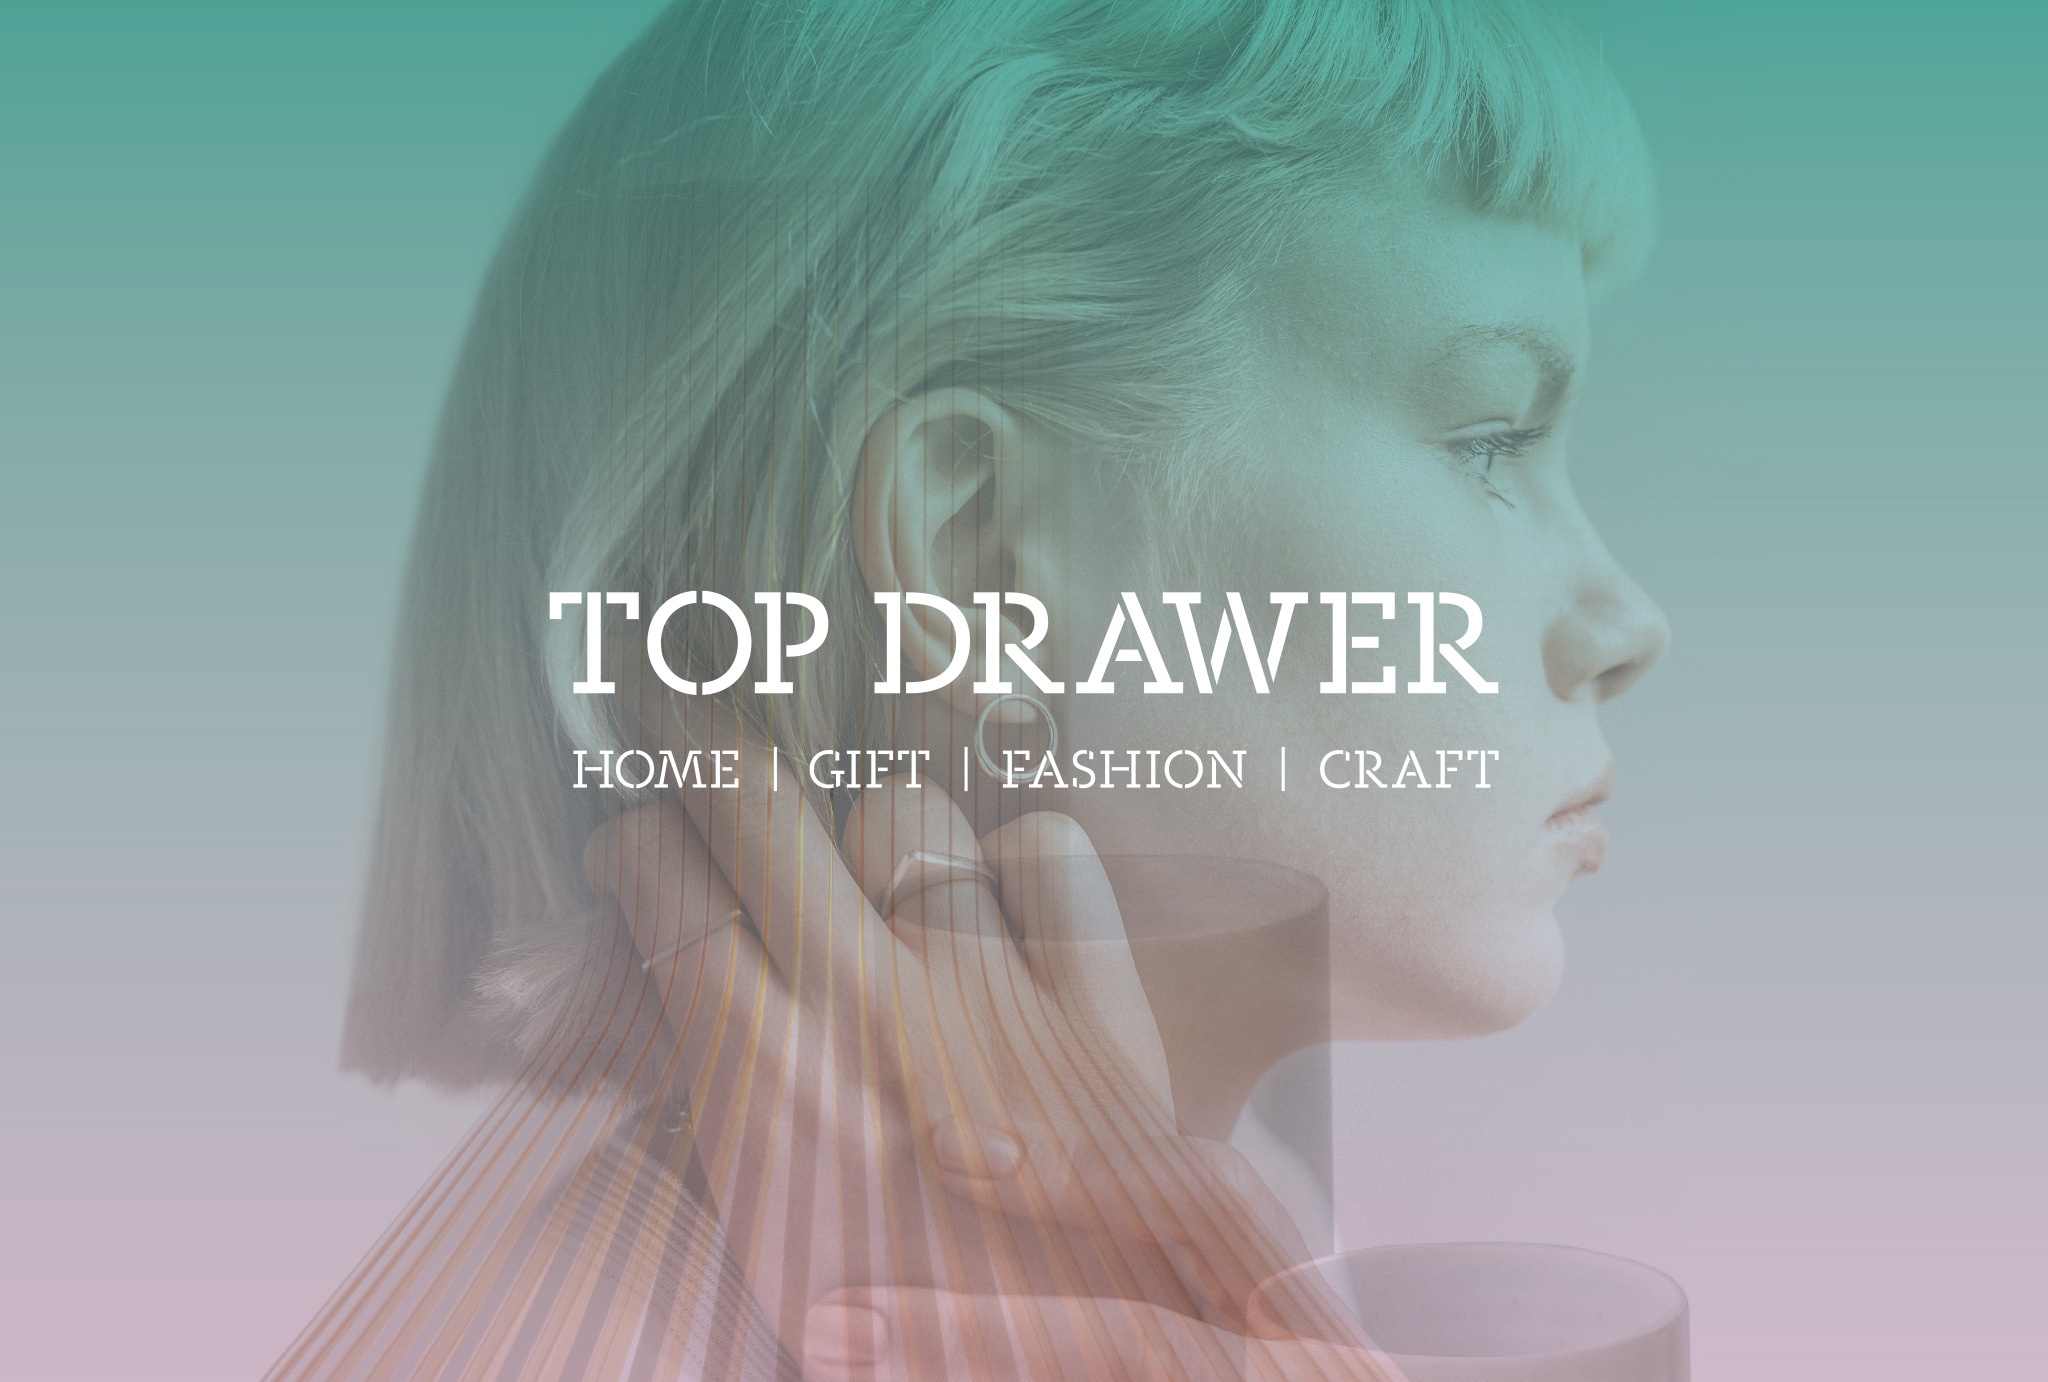 brand identity design for Top Drawer, profile of a woman's face with a colour fade layout from turquoise to pink